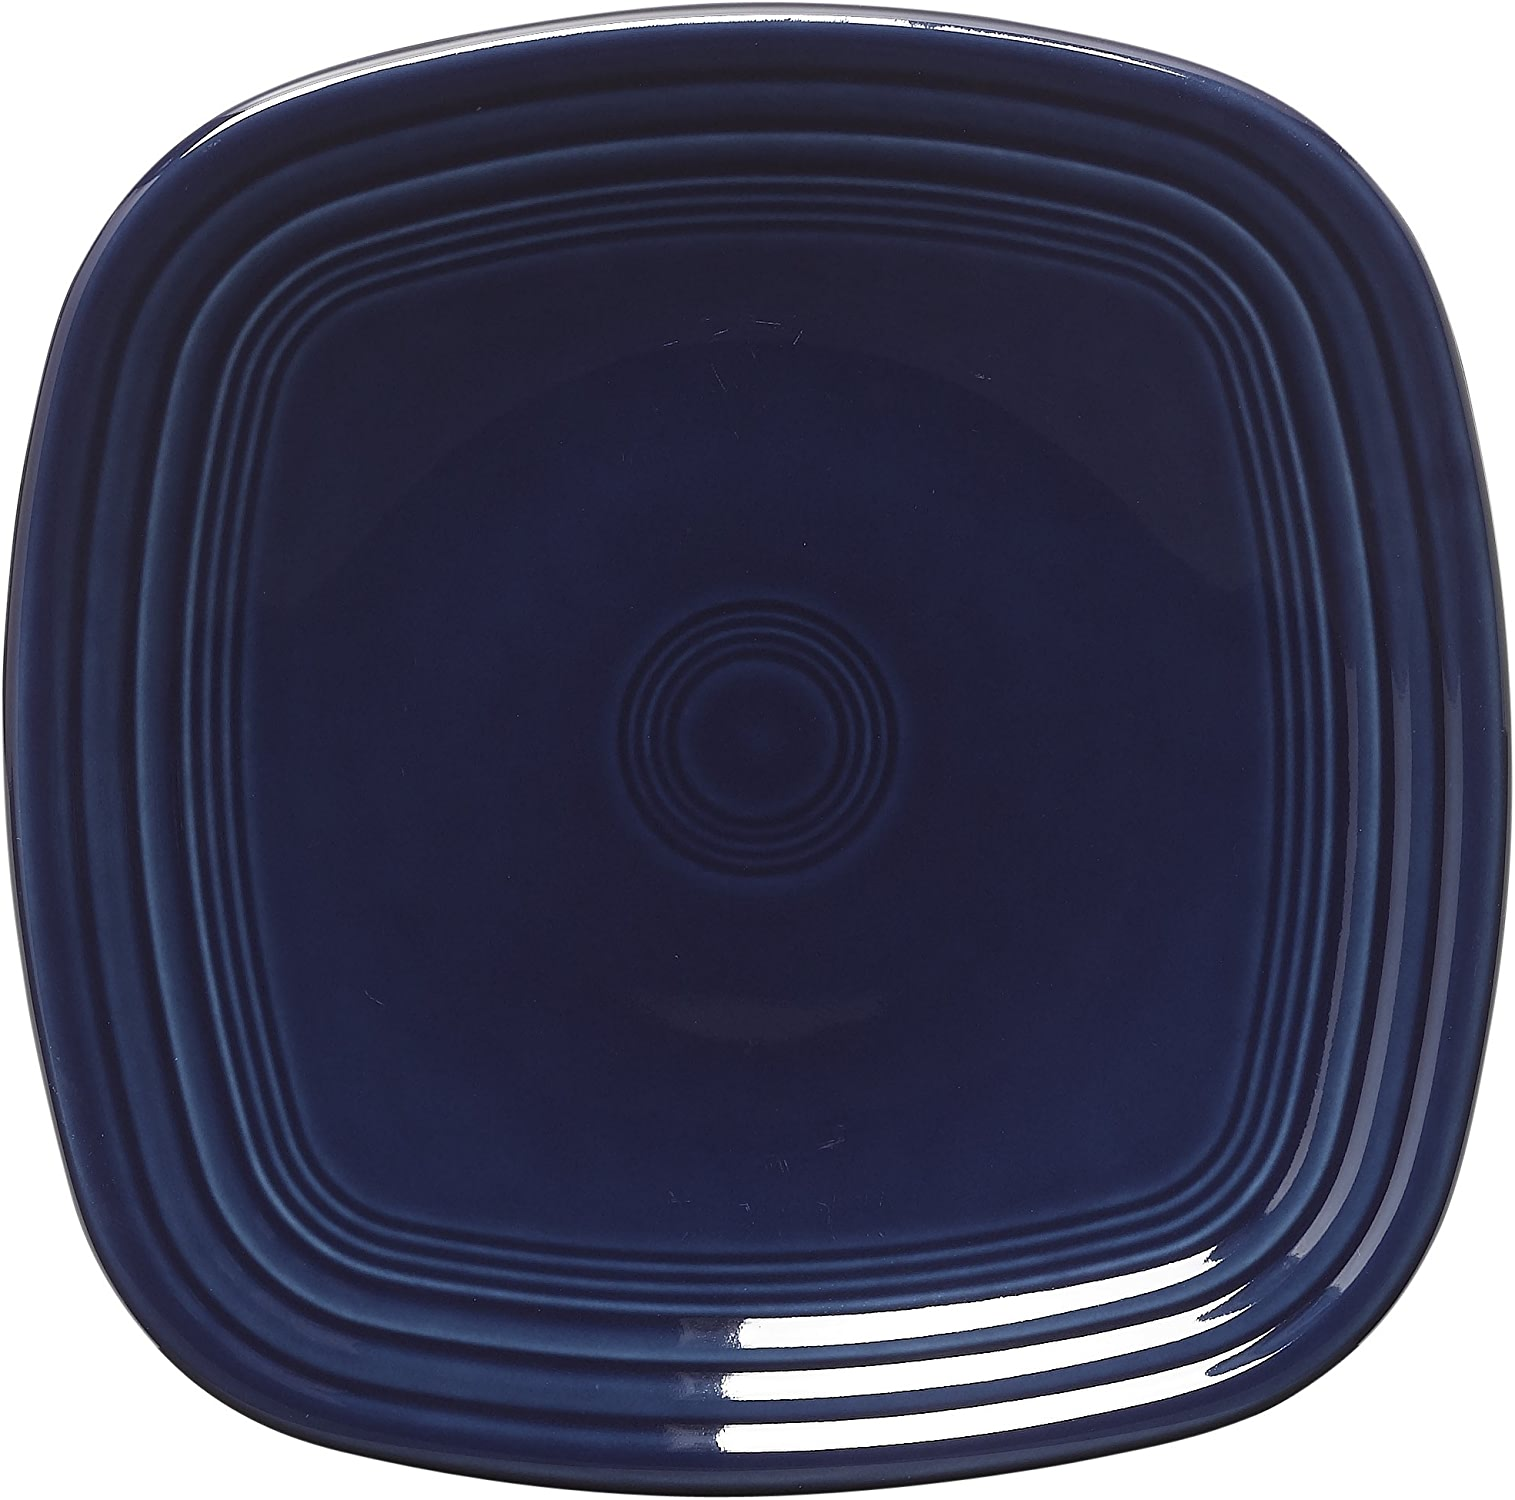 Fiesta 7-3 8-Inch Square Salad Plate, Cobalt by Homer Laughlin